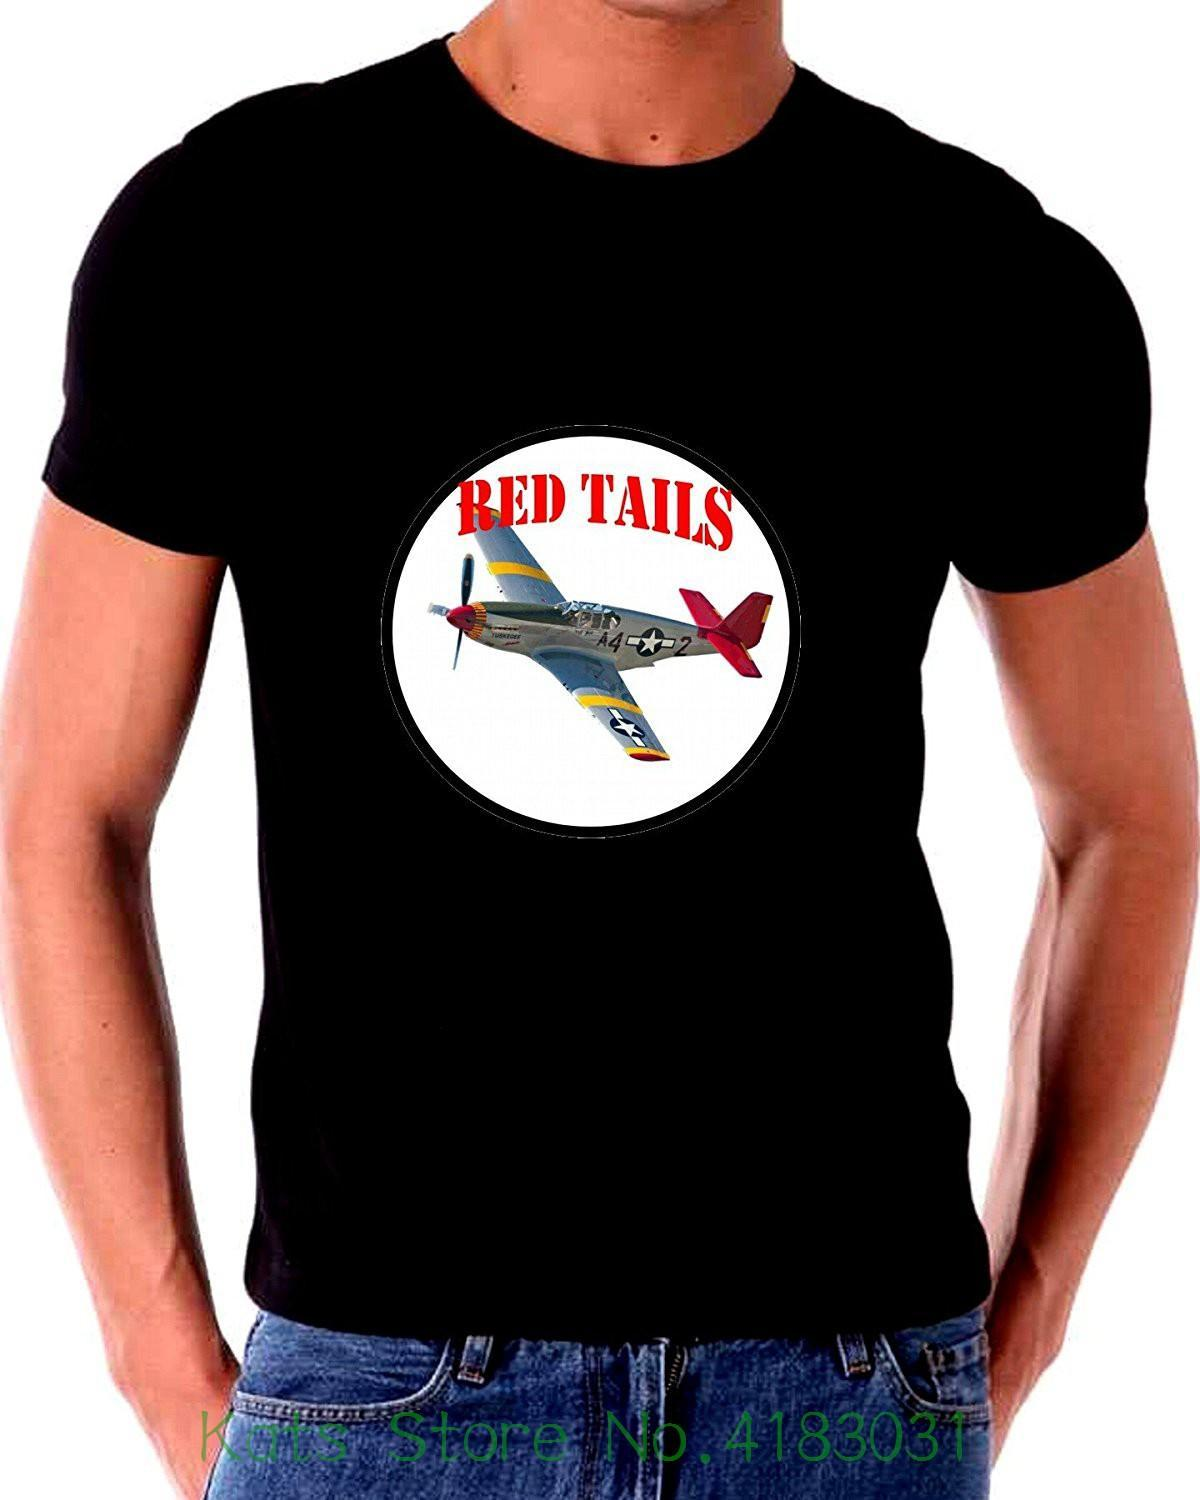 58c18c86 Tuskegee Airmen African American World War 2 Ii Pilots And Red Tail Plane T  Shirt Male Battery Funny Cotton Tops Best Sites For T Shirts Tee Shirt  Deals ...